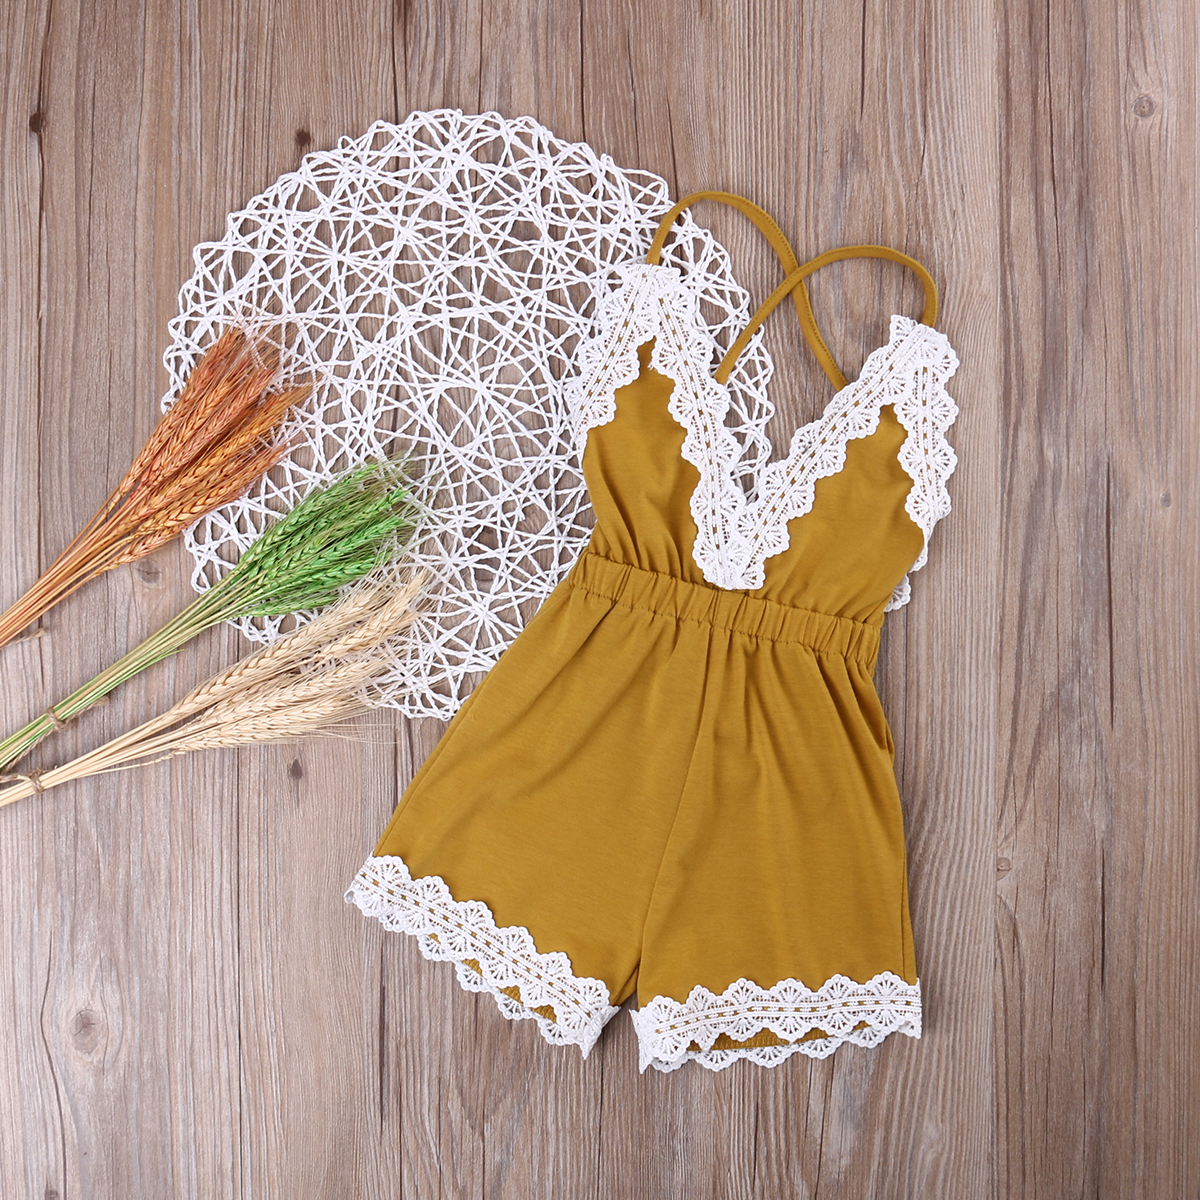 Adorable Newborn Baby Girls Clothing Romper Sleeveless Backless V Neck Jumpsuit Flower Outfits Clothes New baby girls butterfly long sleeve romper newborn kids 2017 new arrival button jumpsuit outfits clothing for newborns age 3m 3y